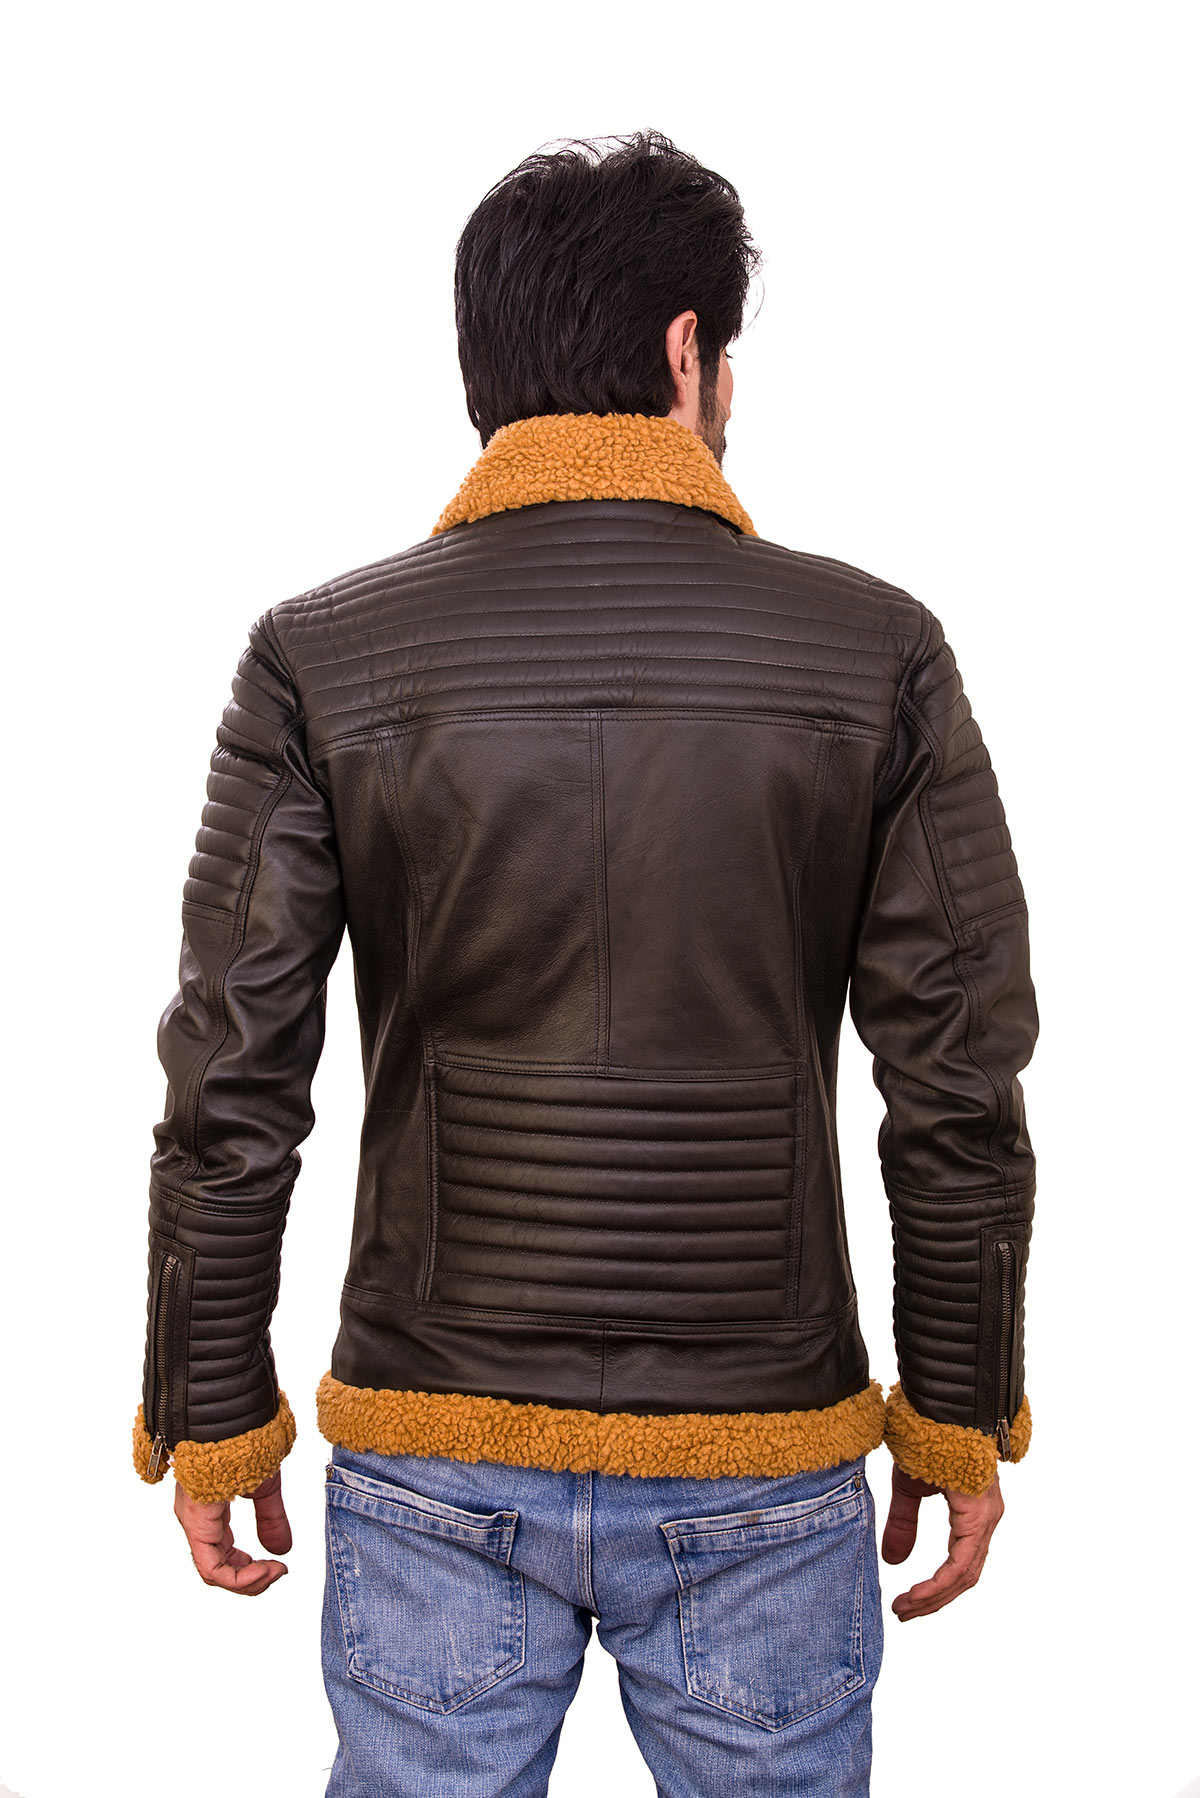 brown leather jacket mens outfit